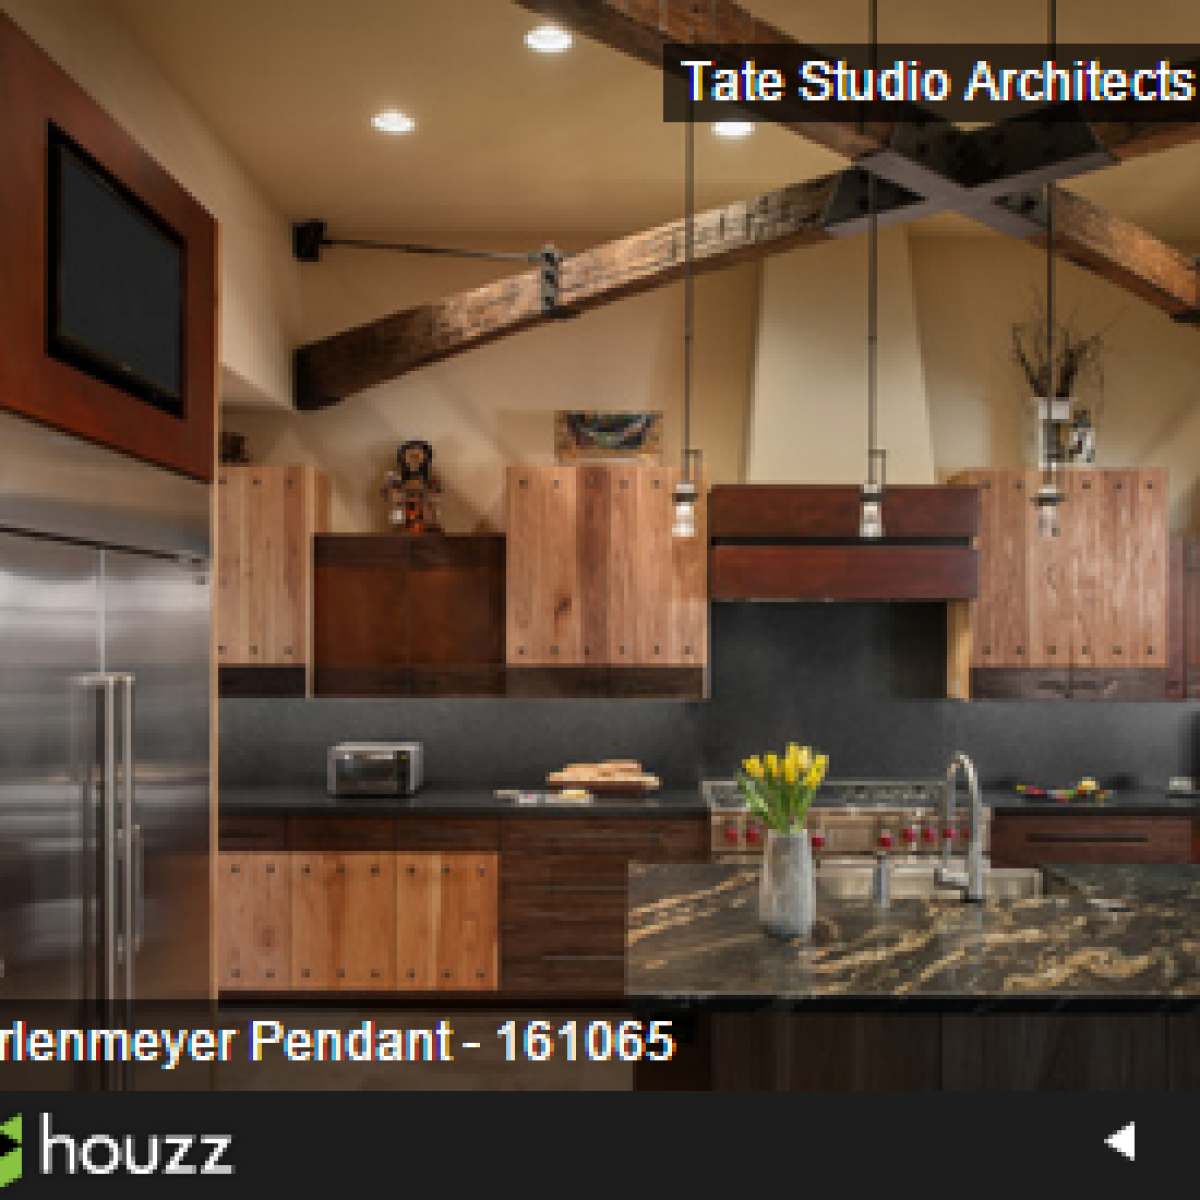 houzz-featured-designers-kitchen-lighting - Hubbardton Forge